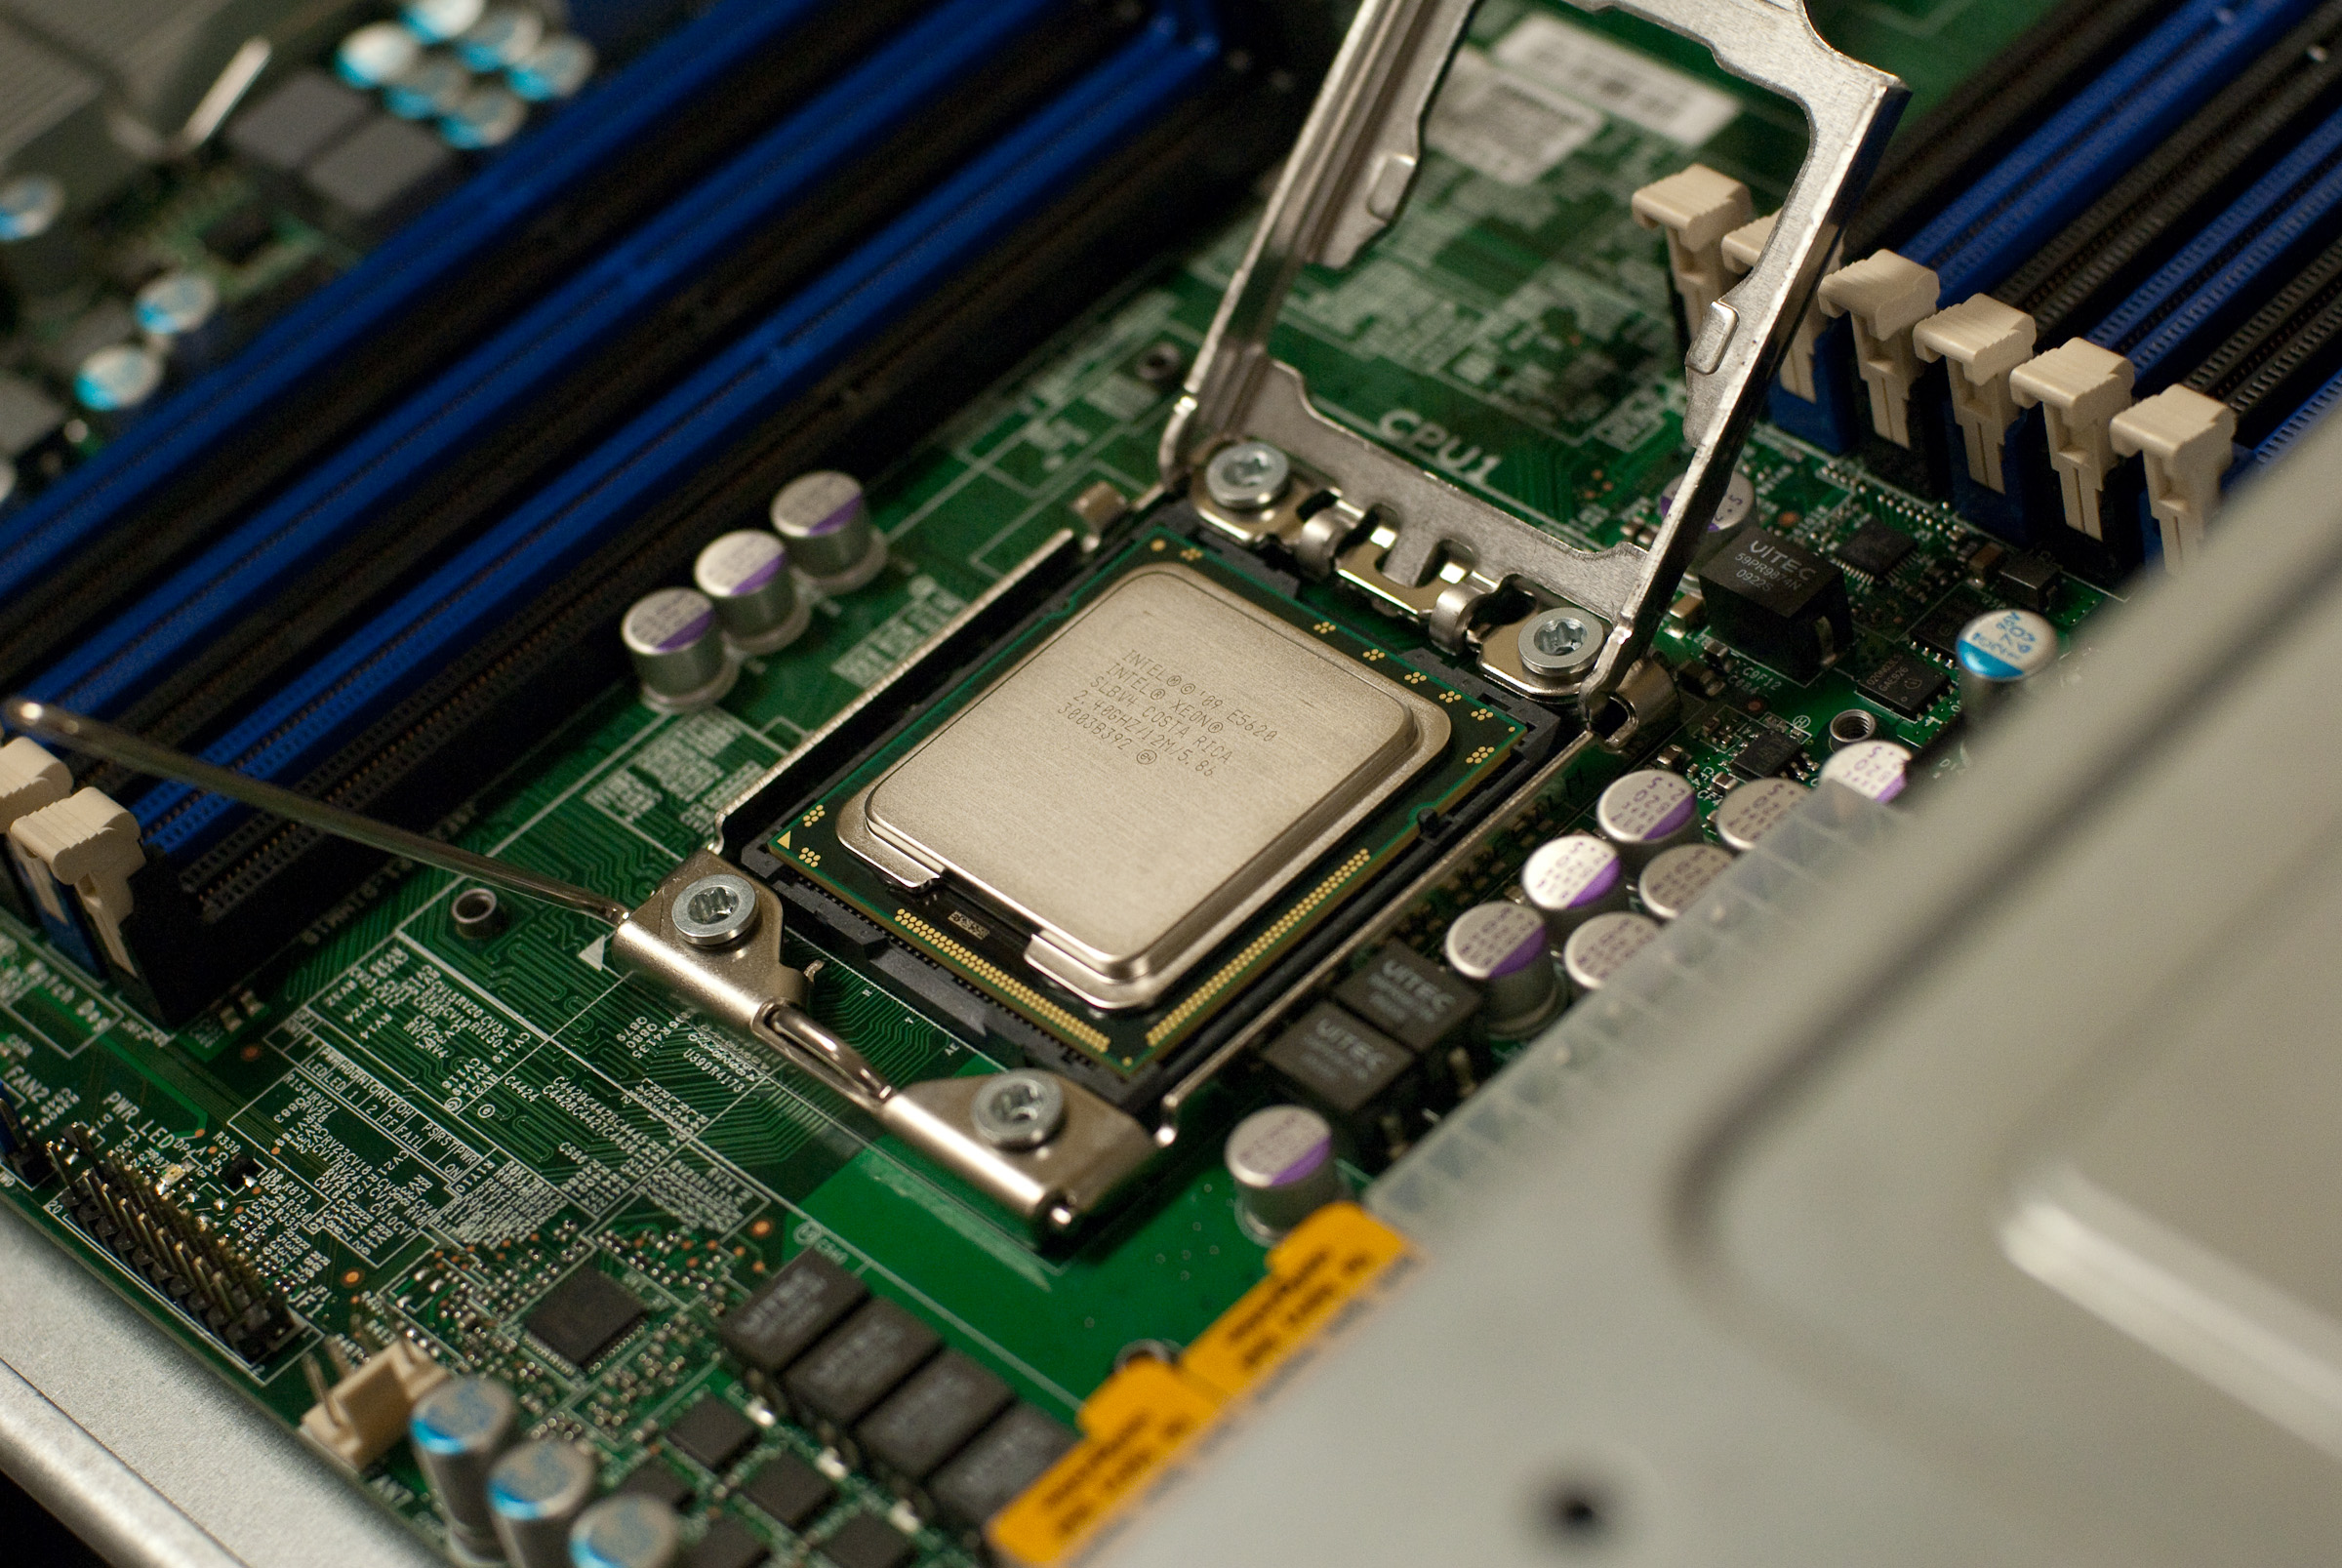 supermicro-sc847a-motherboard-with-intel-xeon-e5620-cpu.jpg